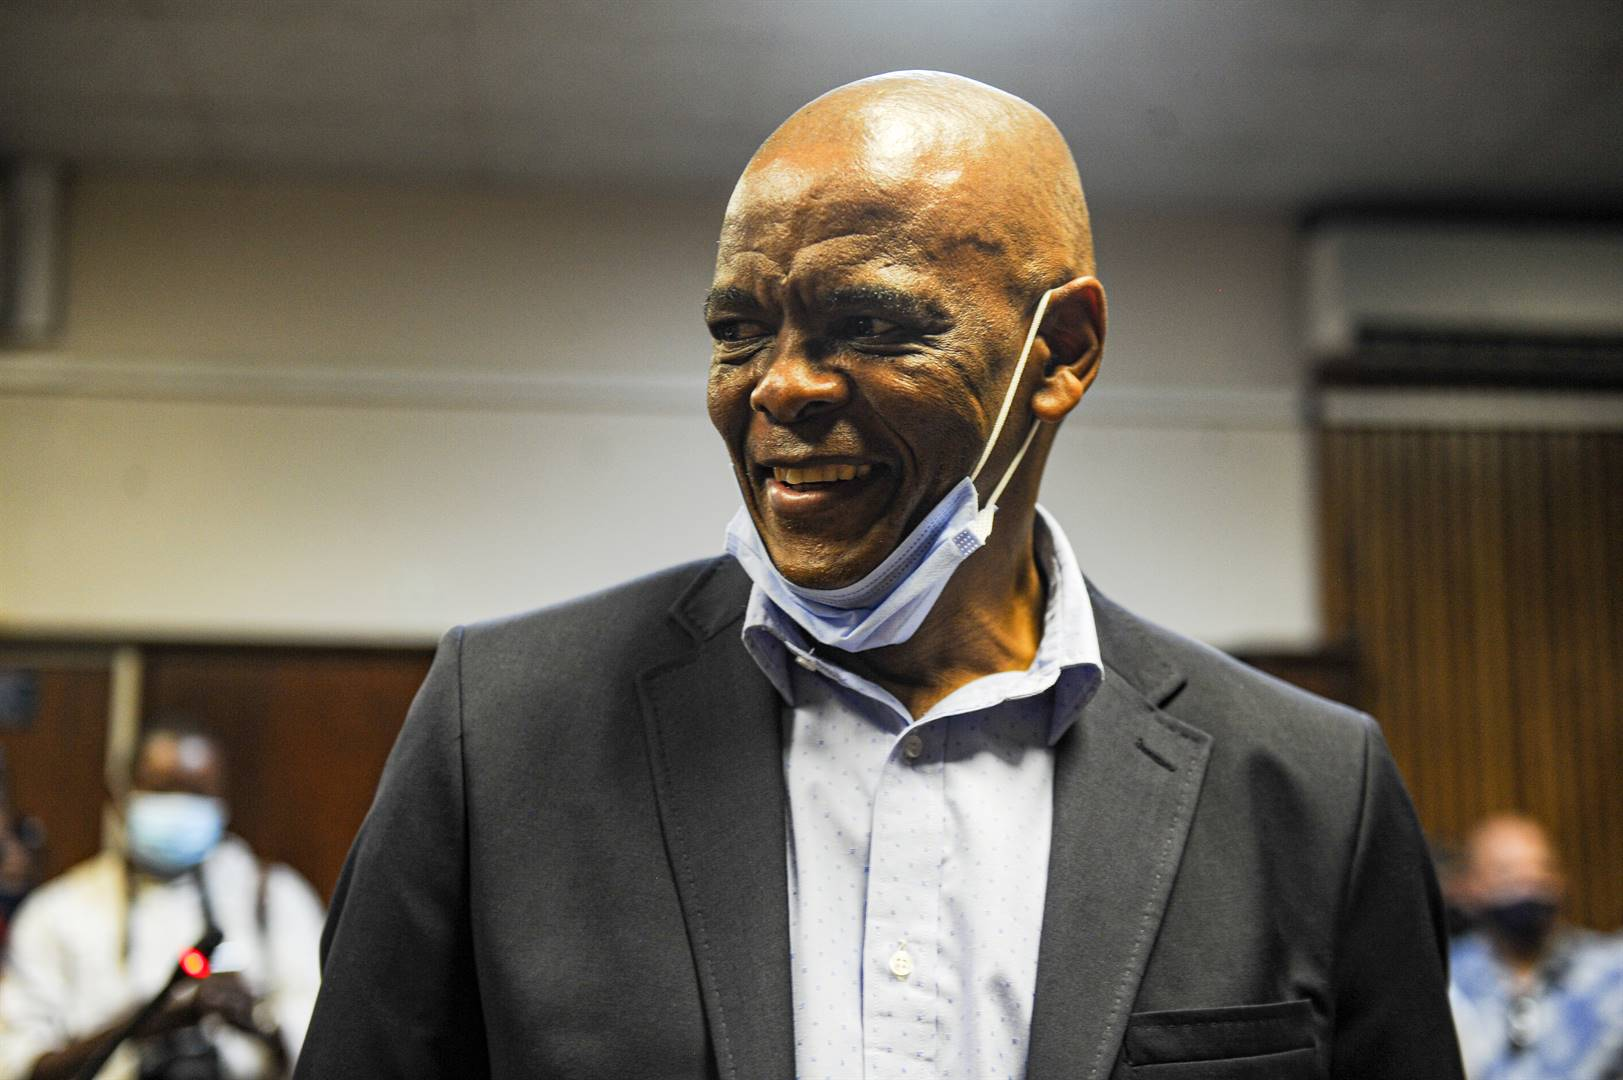 ANC secretary-general Ace Magashule appears on Friday at the Bloemfontein Magistrate's Court. Picture: Rosetta Msimango